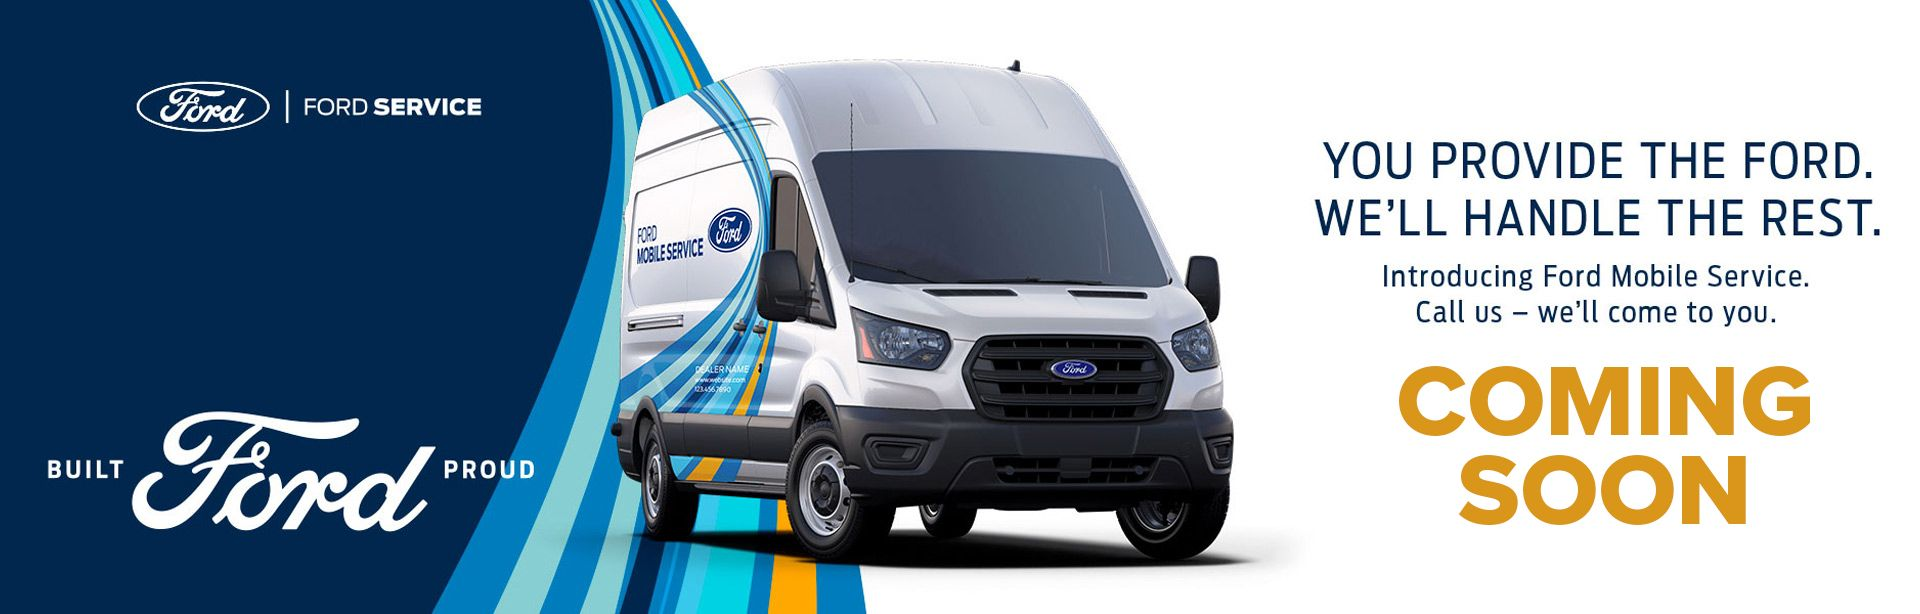 Ford Service Coming Soon